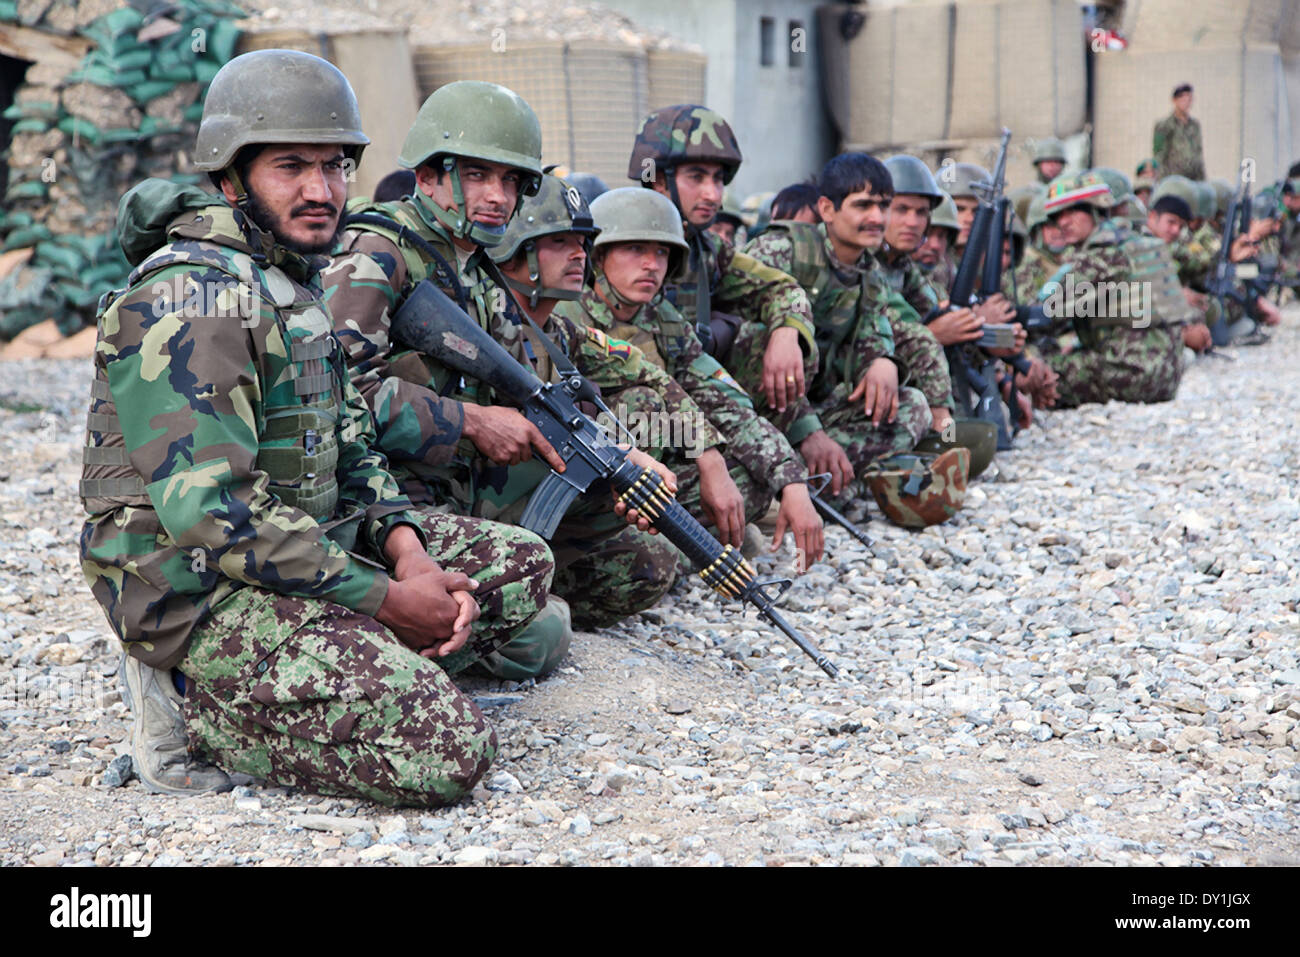 Afghan National Army soldiers wait outside during a meeting at Forward Operating Base Boris March 31, 2014 in Bermal District, Paktika province, Afghanistan. - Stock Image